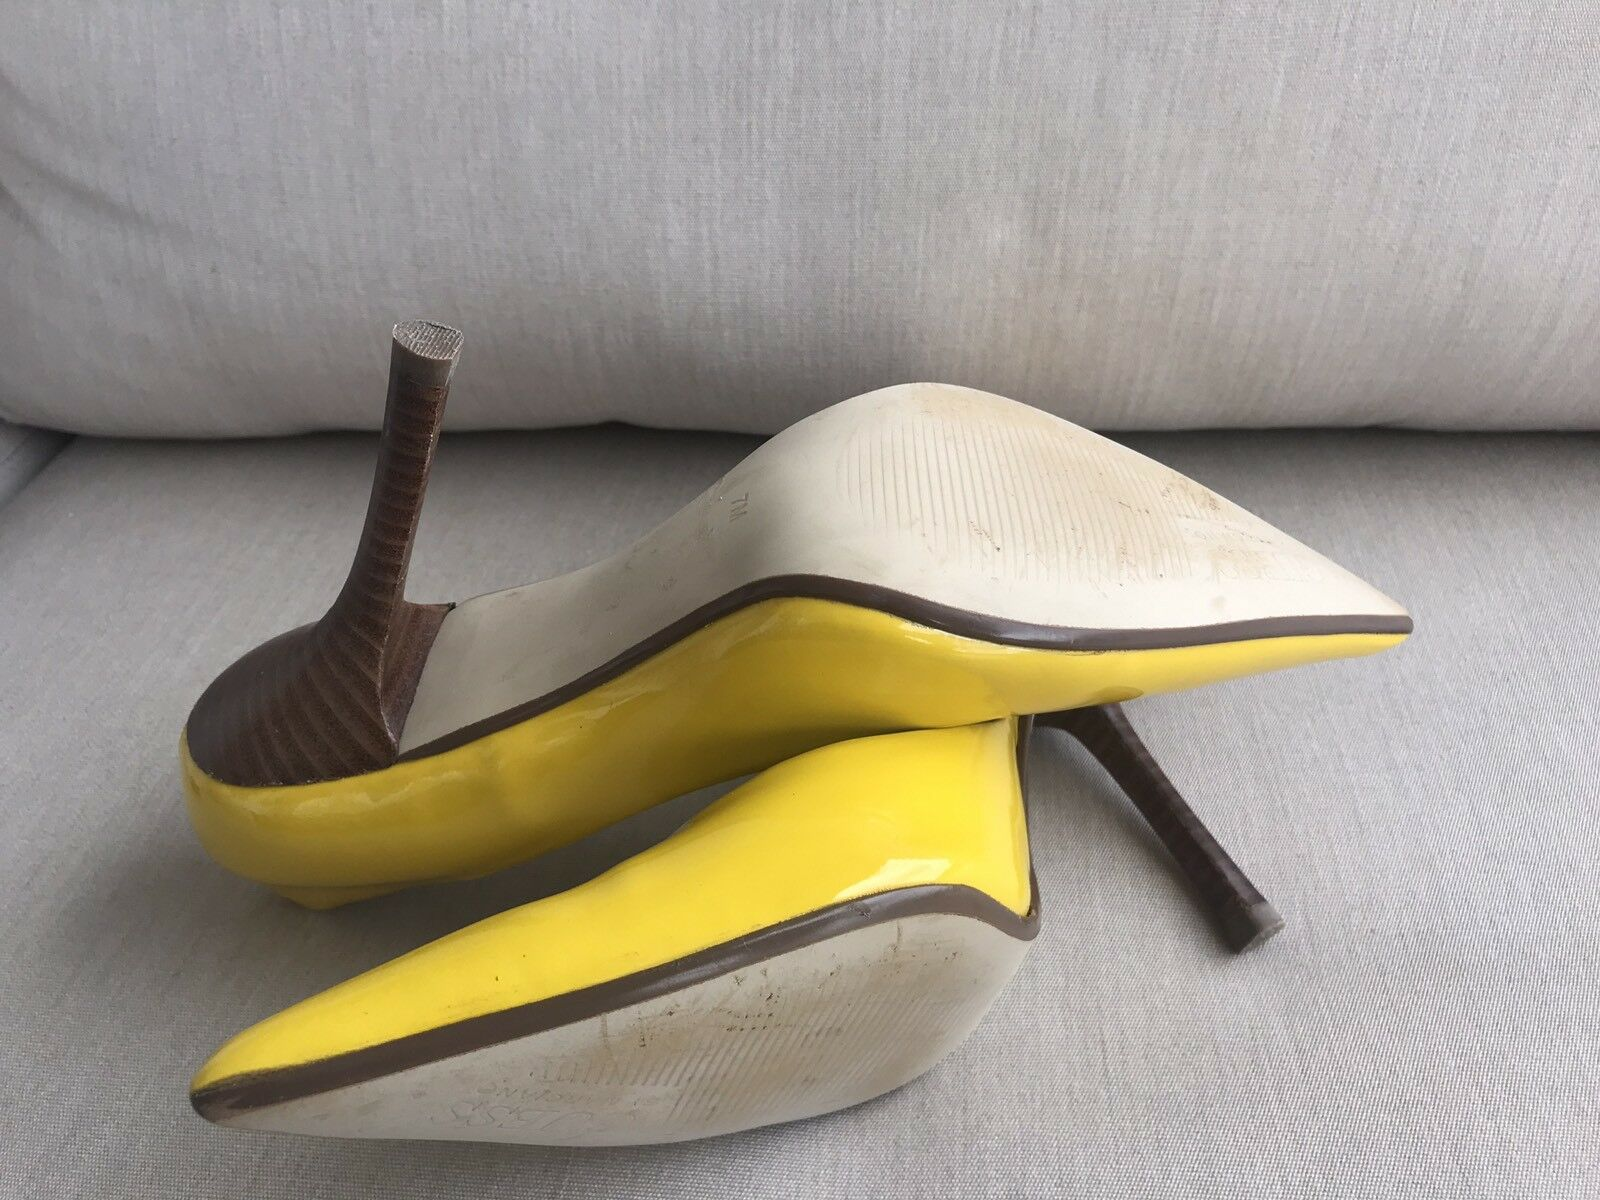 PaTeNT yeLLoW EUC Sz 7 LEATHER LEATHER LEATHER Pointy Toe Stilettos Heels PUMPS CARRIE GuESS b3be5e